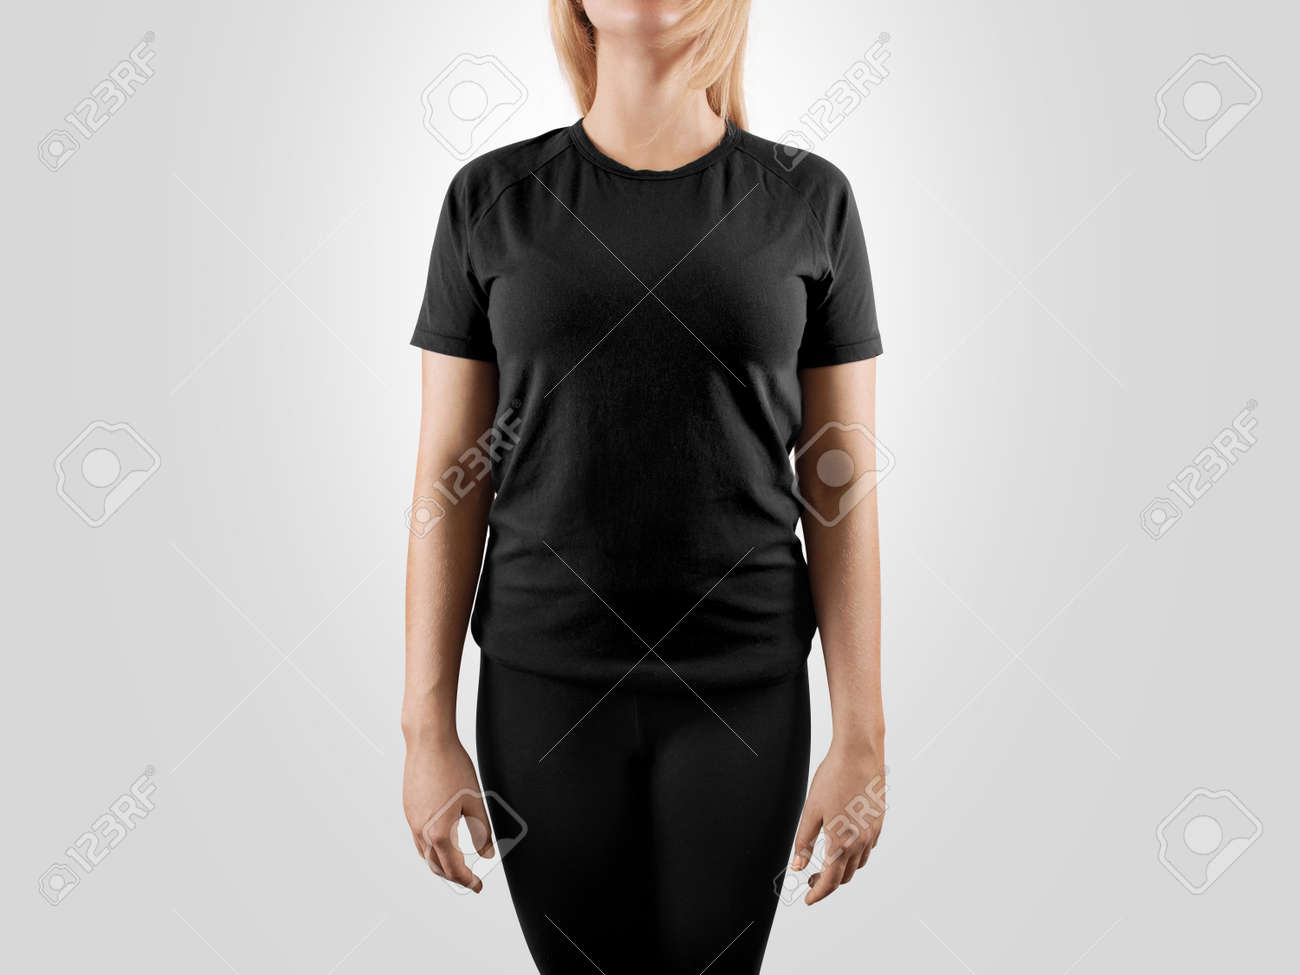 Black t shirt blank template - Blank Black T Shirt Design Mockup Isolated Women Tshirt Clear Template Front Mock